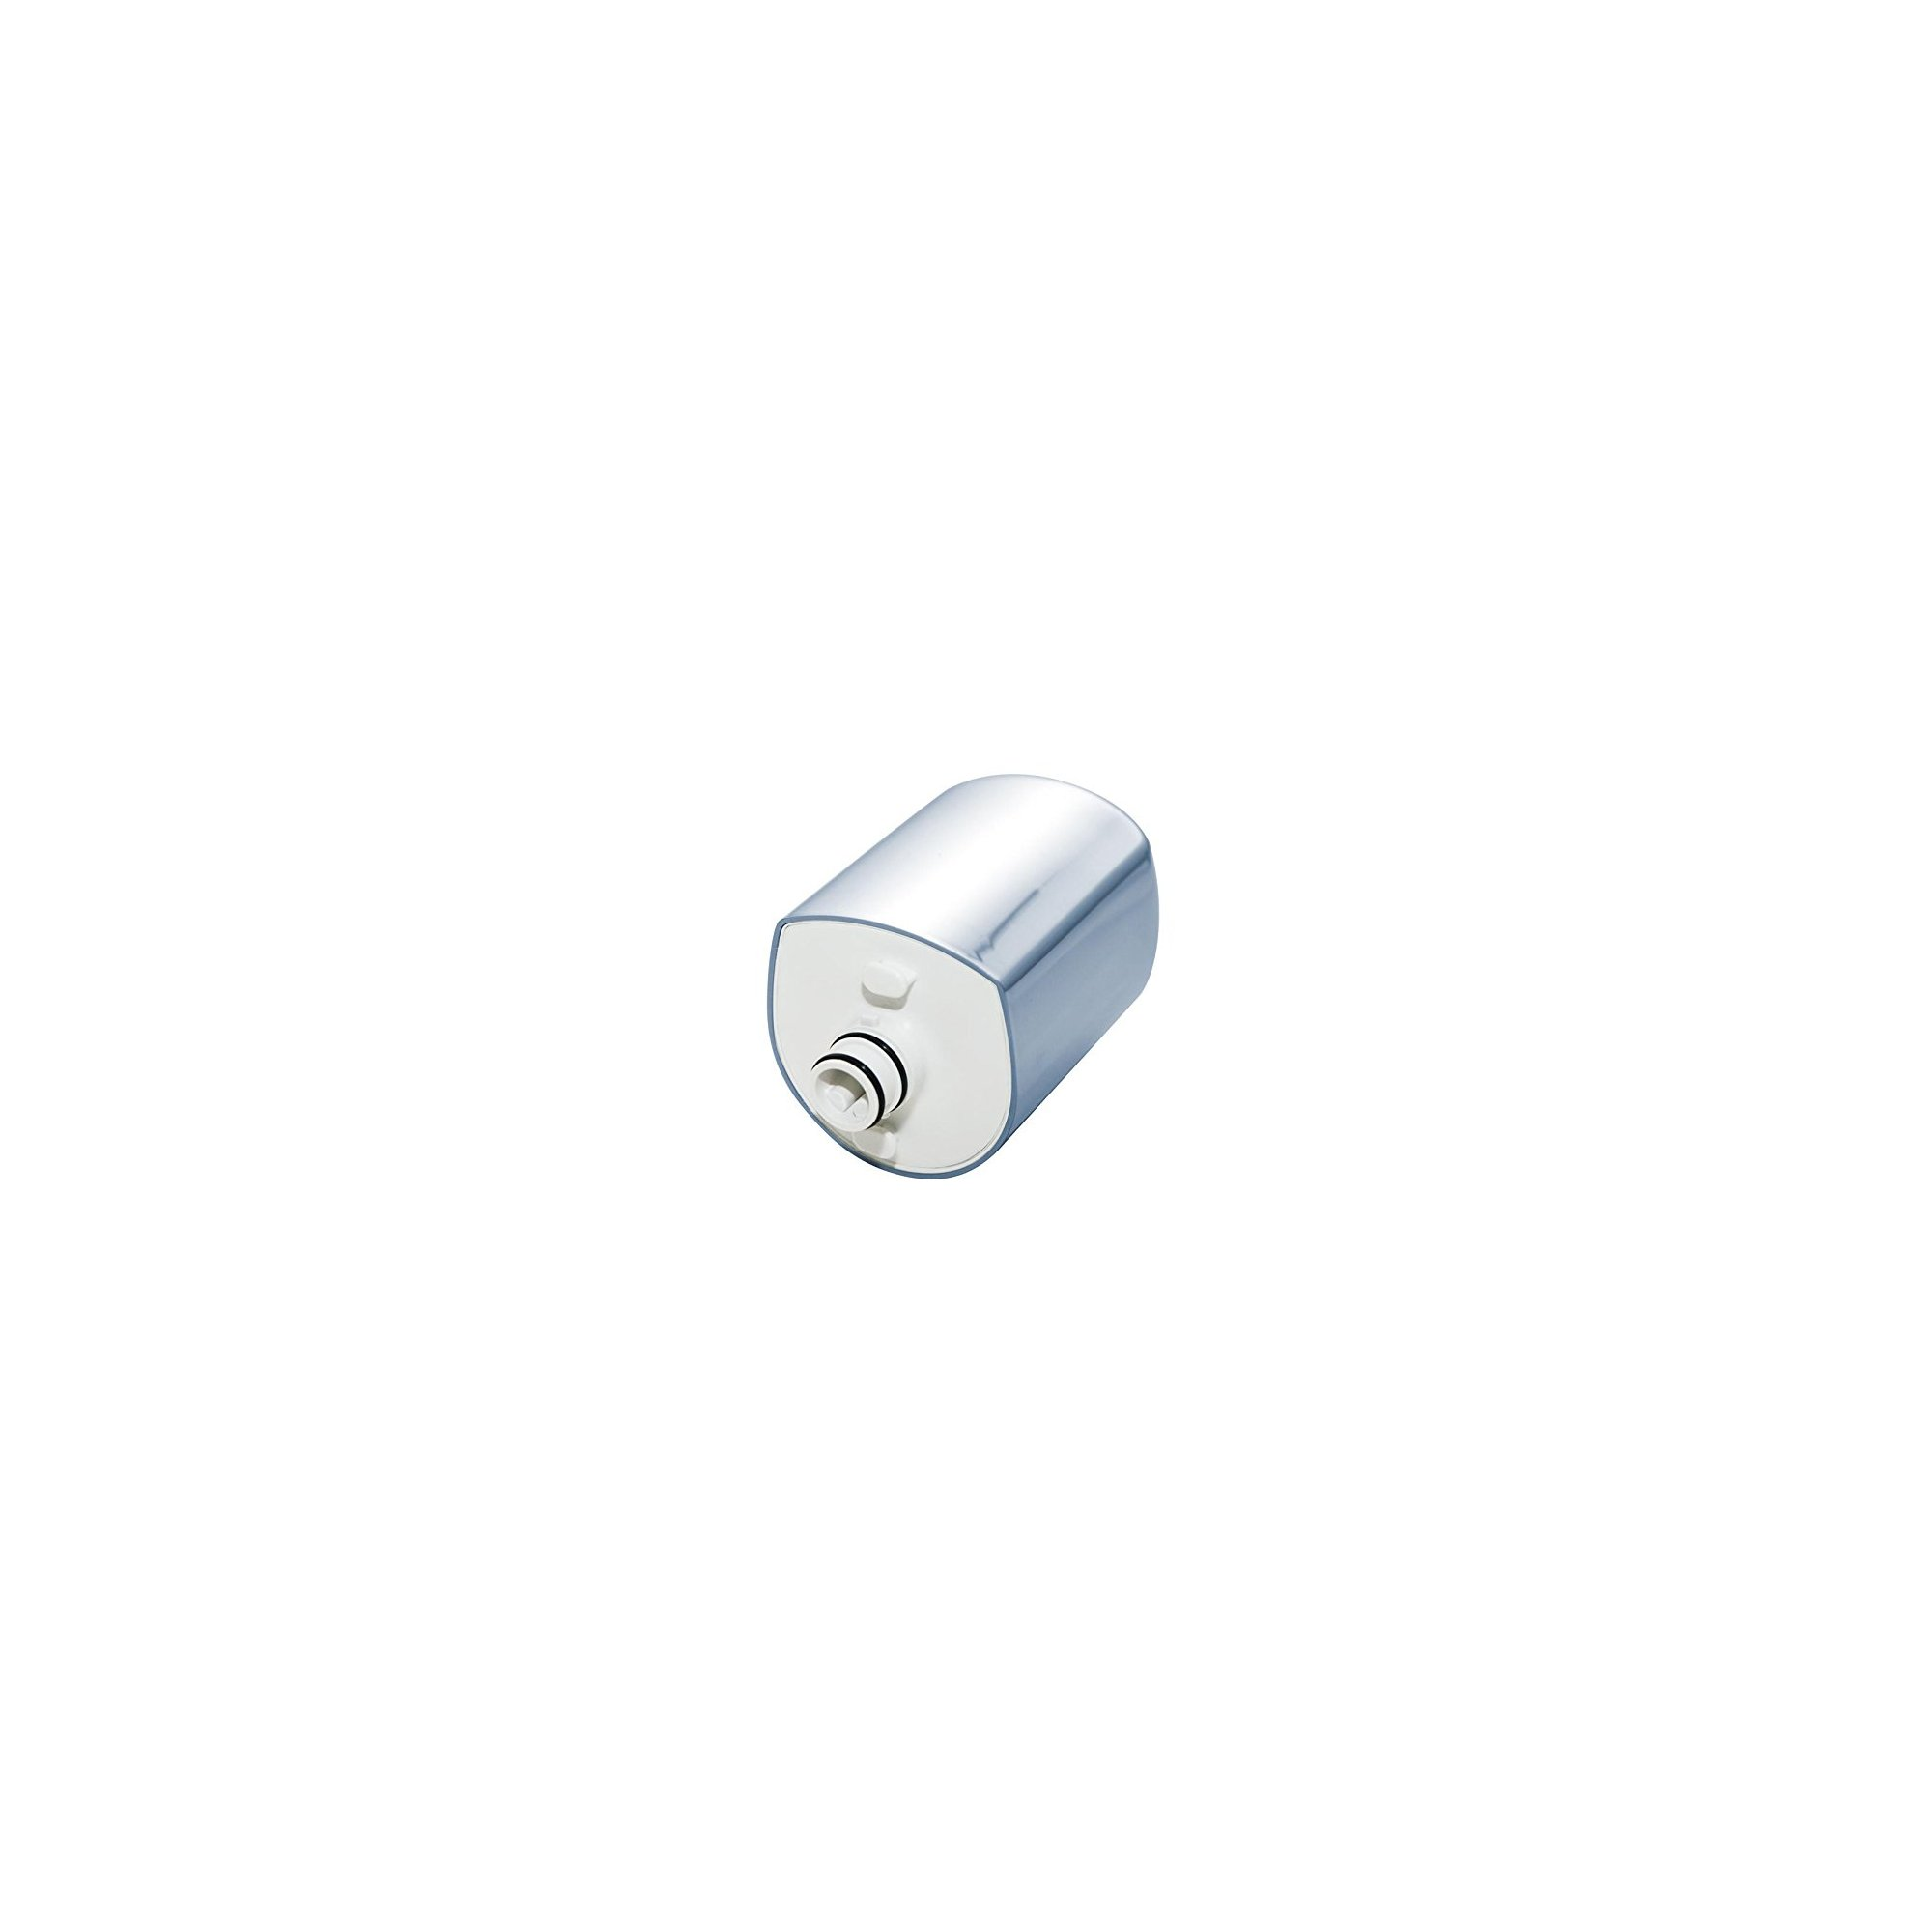 Waterpik InstaPure F8RC-1ES Replacement Filter, Chrome